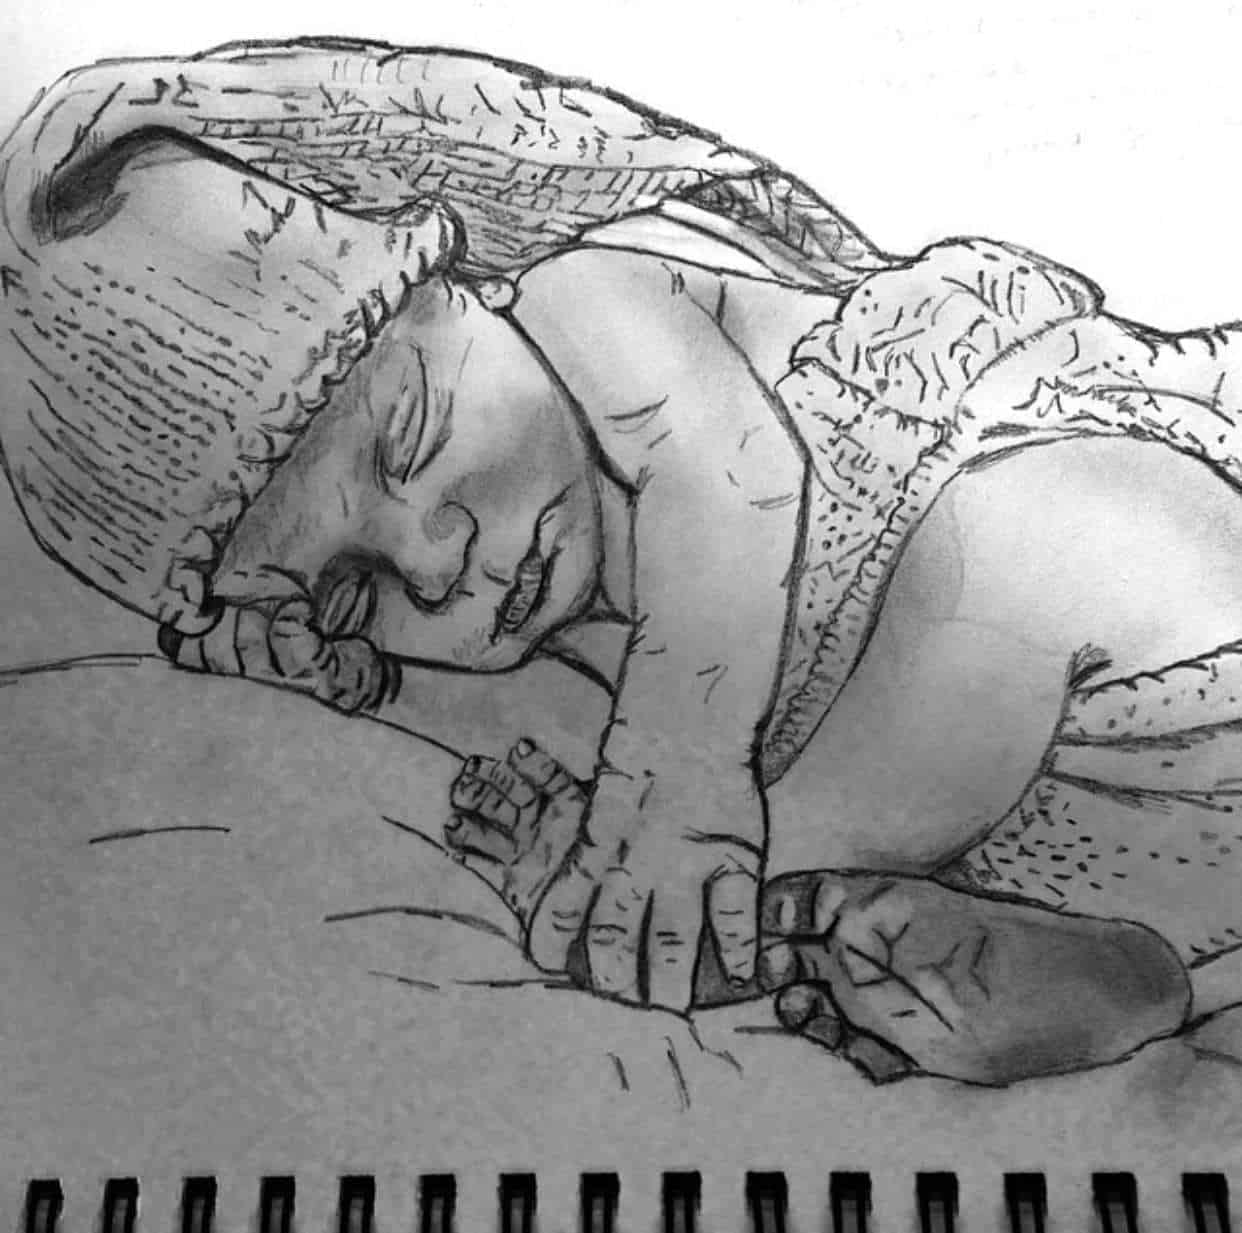 Sketch drawing of a baby by Helen to represent the inner child